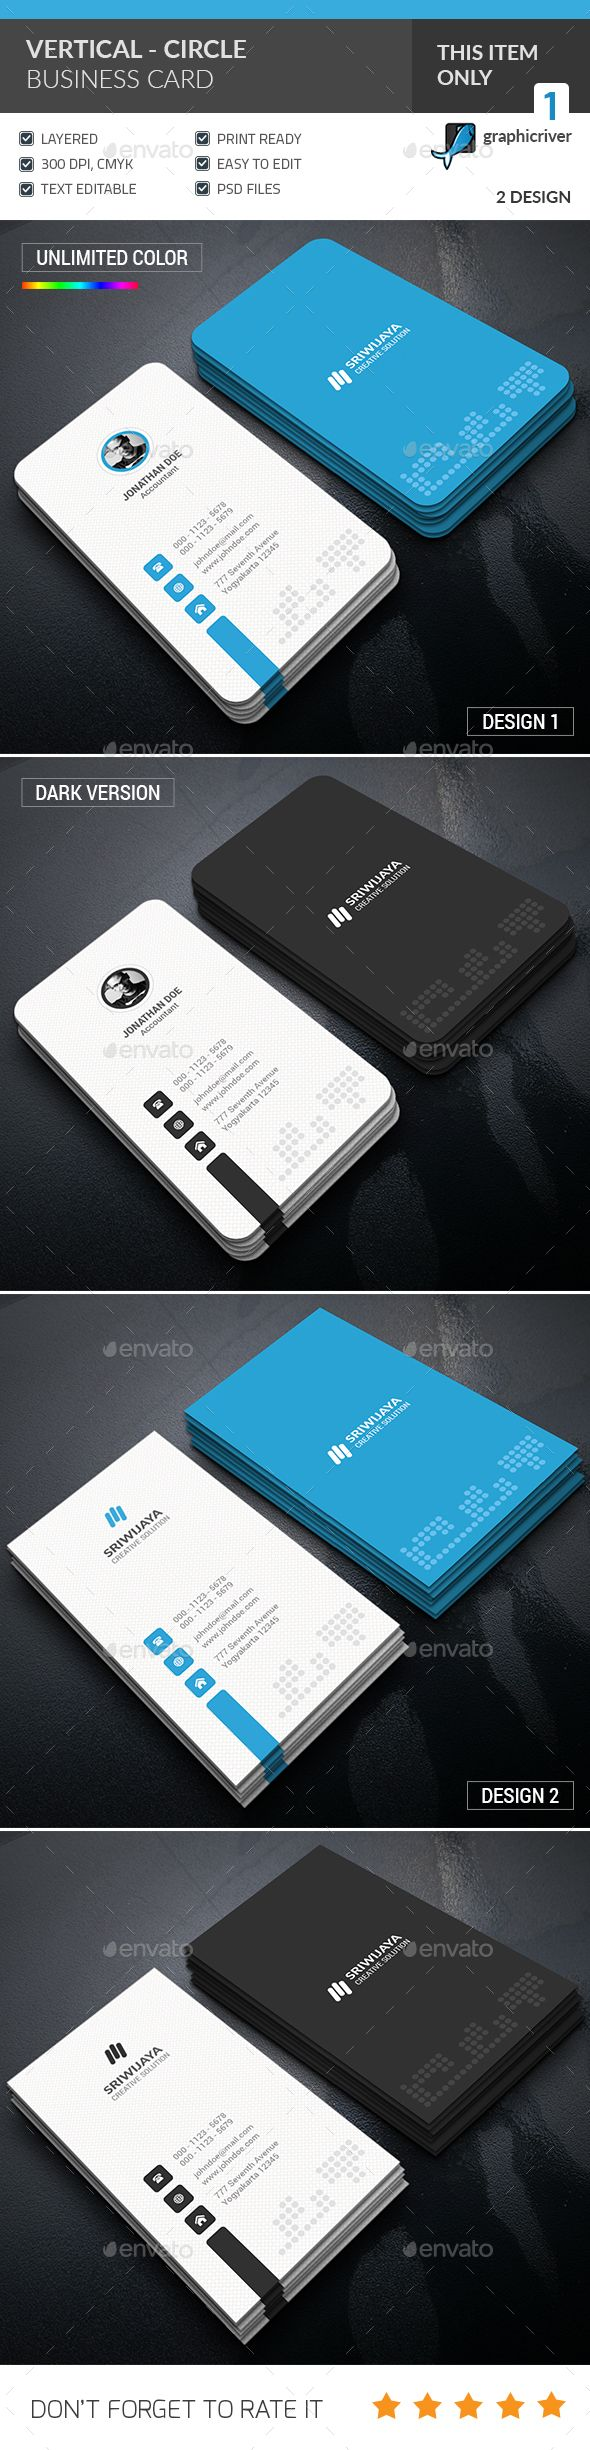 773 best business cards images on pinterest business card vertical circle business card magicingreecefo Choice Image